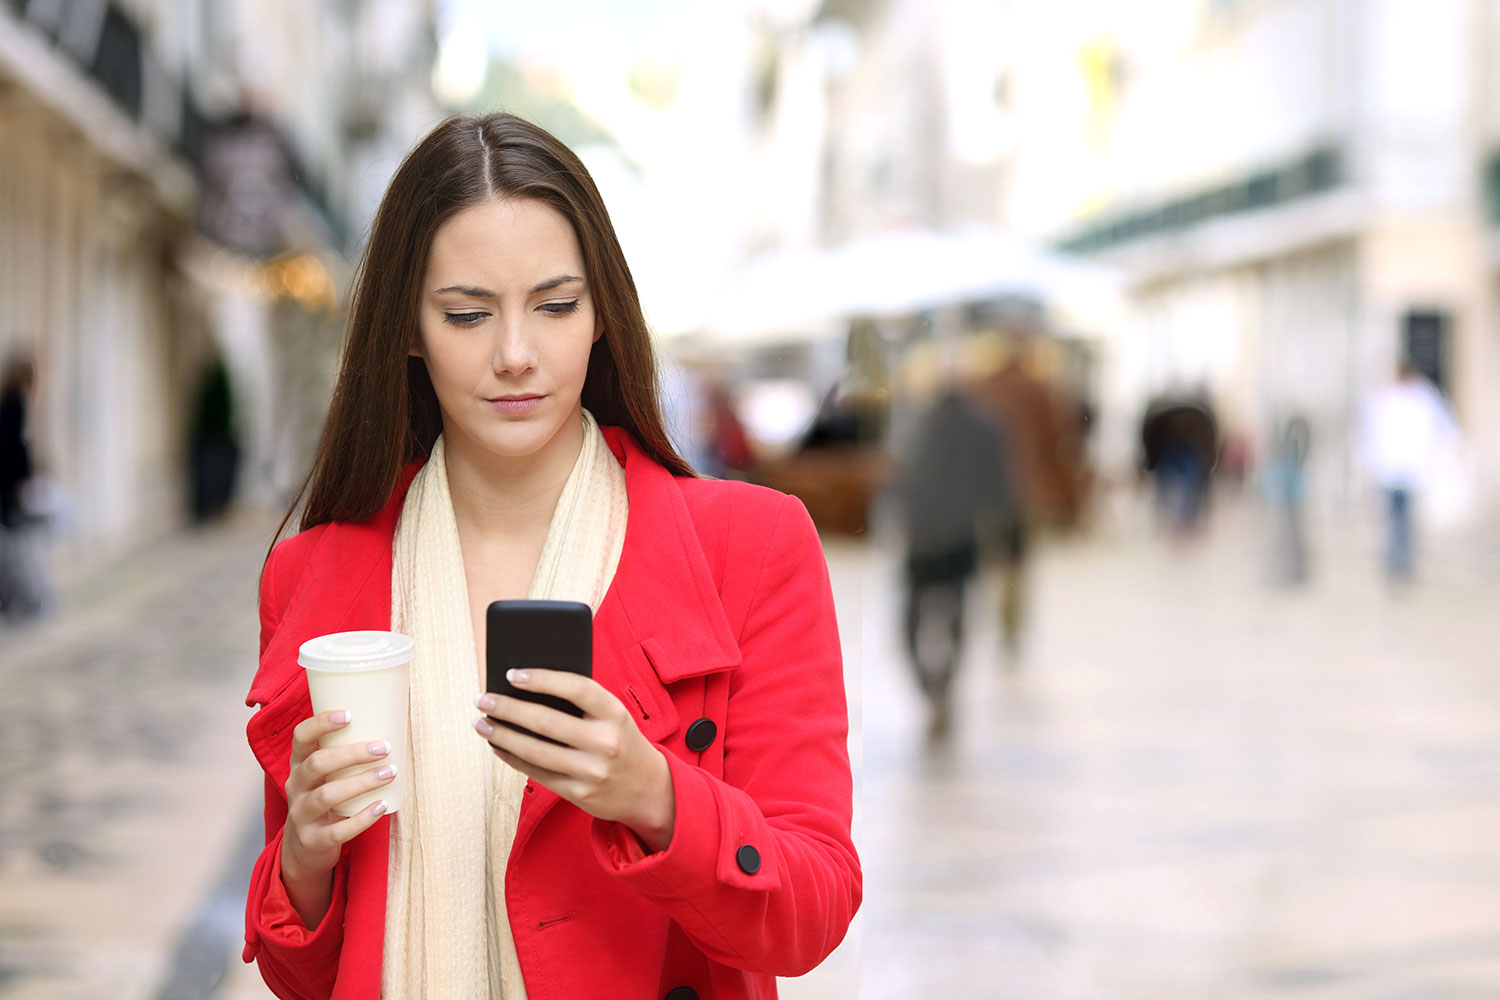 Woman in red with cell phone and coffee.